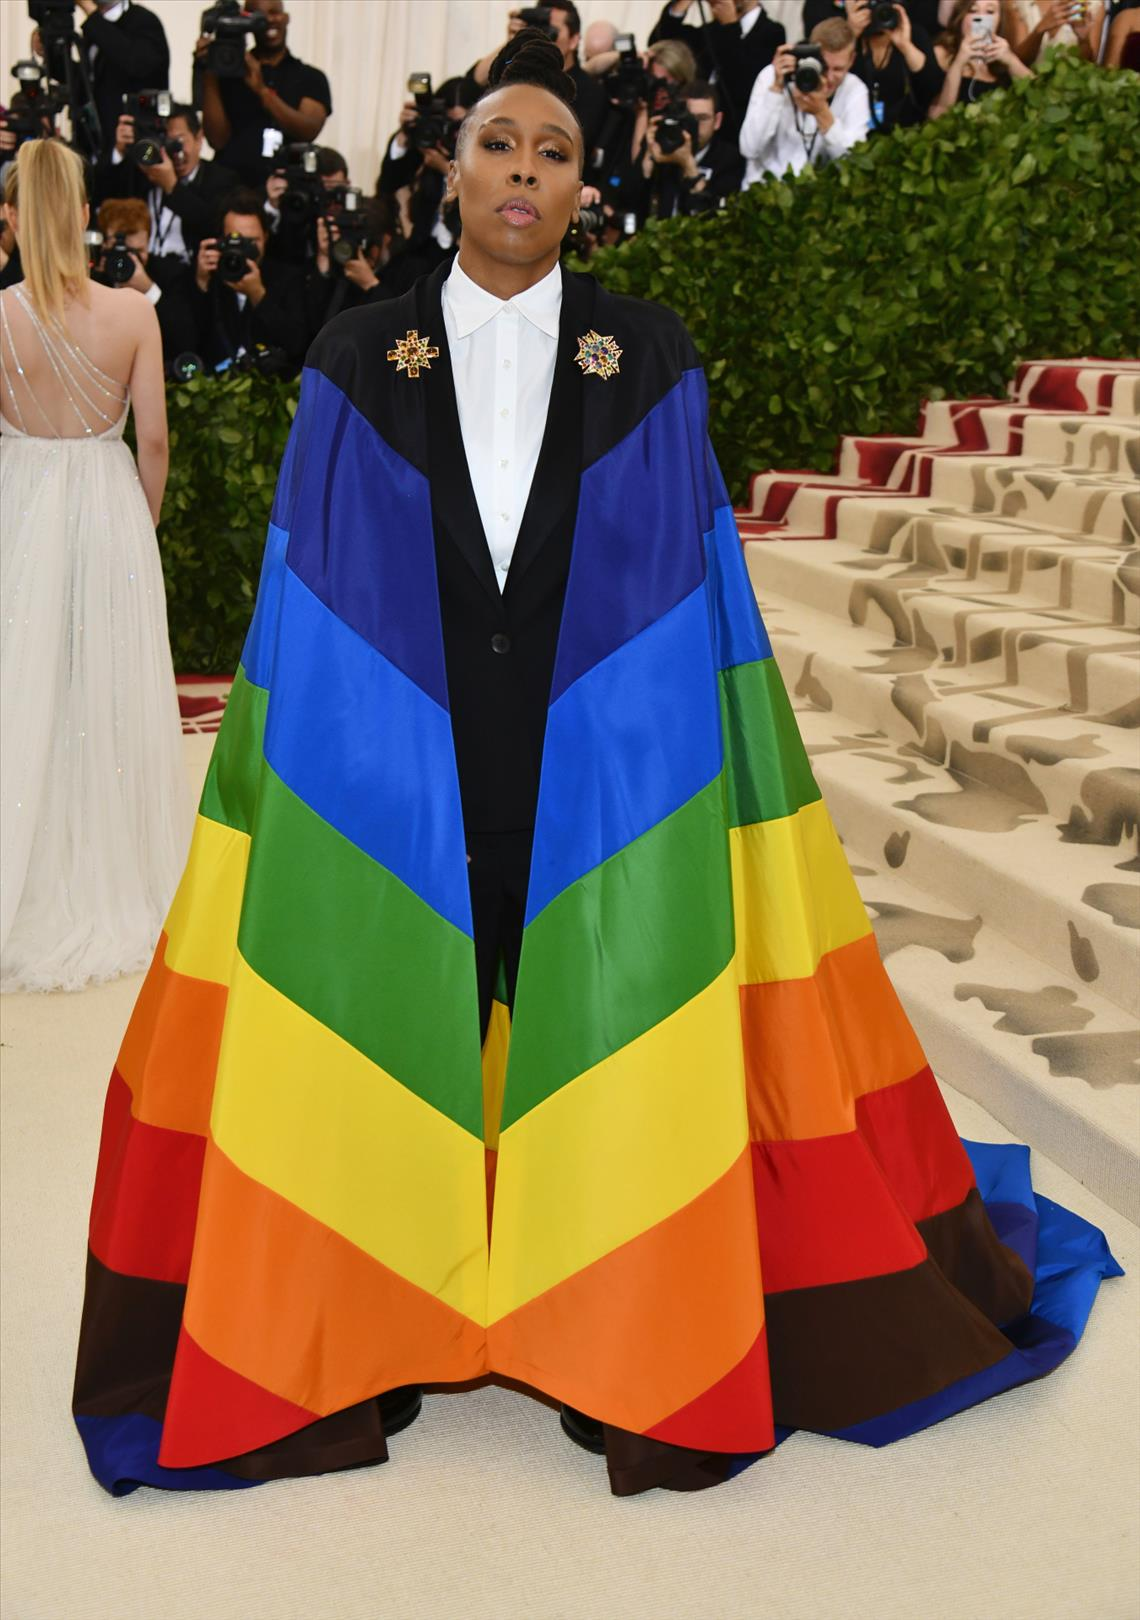 lena-waithe-met-gala-2018-heavenly-bodies-fashion-catholic-imagination-red-carpet-best-dressed.jpeg